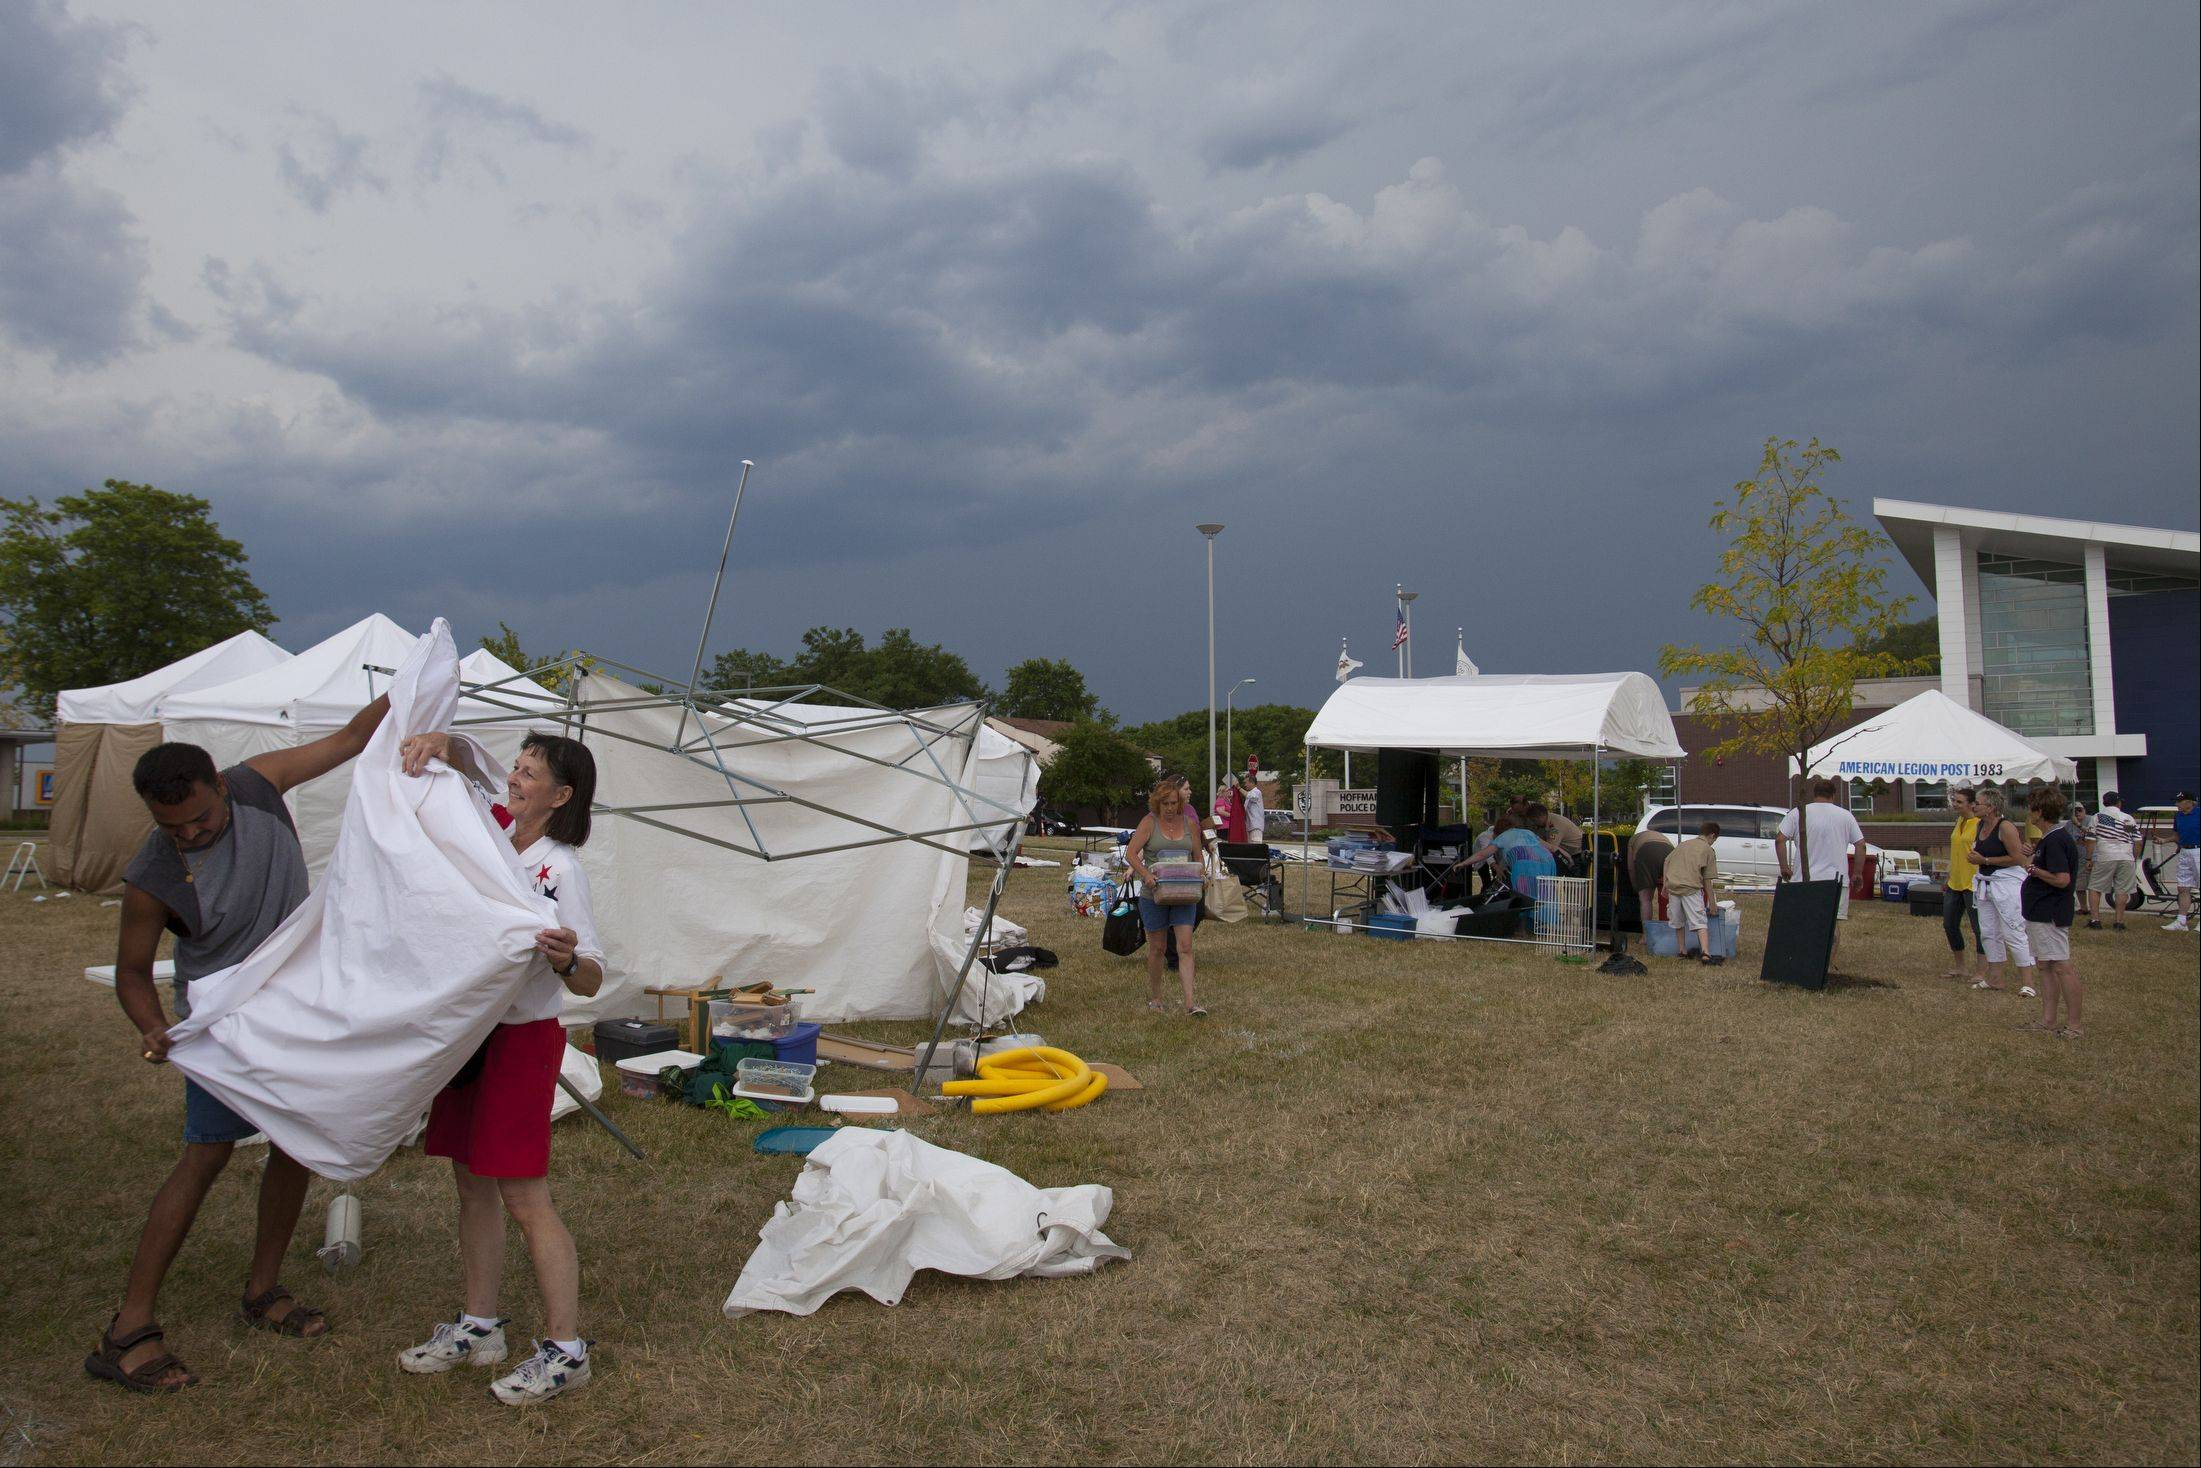 Amit Patel of Hoffman Estates helps Cyndy Jirsa of Schaumburg after strong winds blew over her tent and damaging about 50% of her wood crafts including: bird houses, key holders, and paper towel holders at the Hoffman Estates Arts and Crafts Fair.